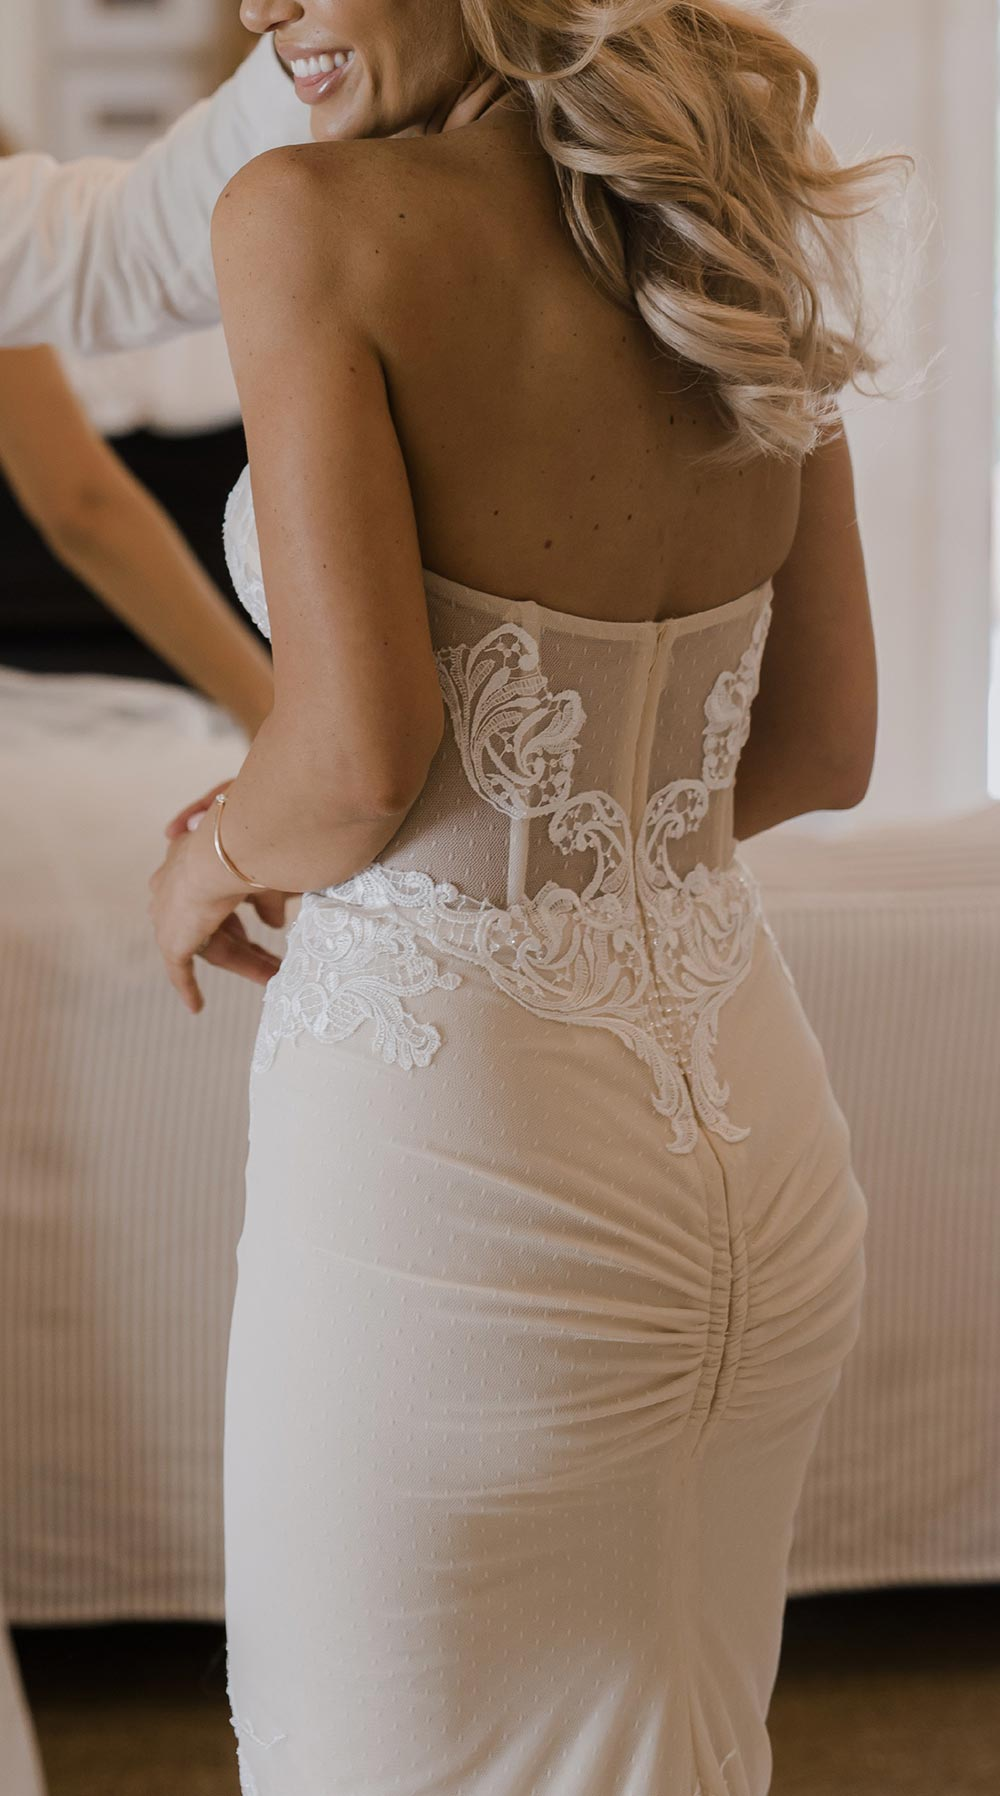 ribbed wedding dress with embroidery